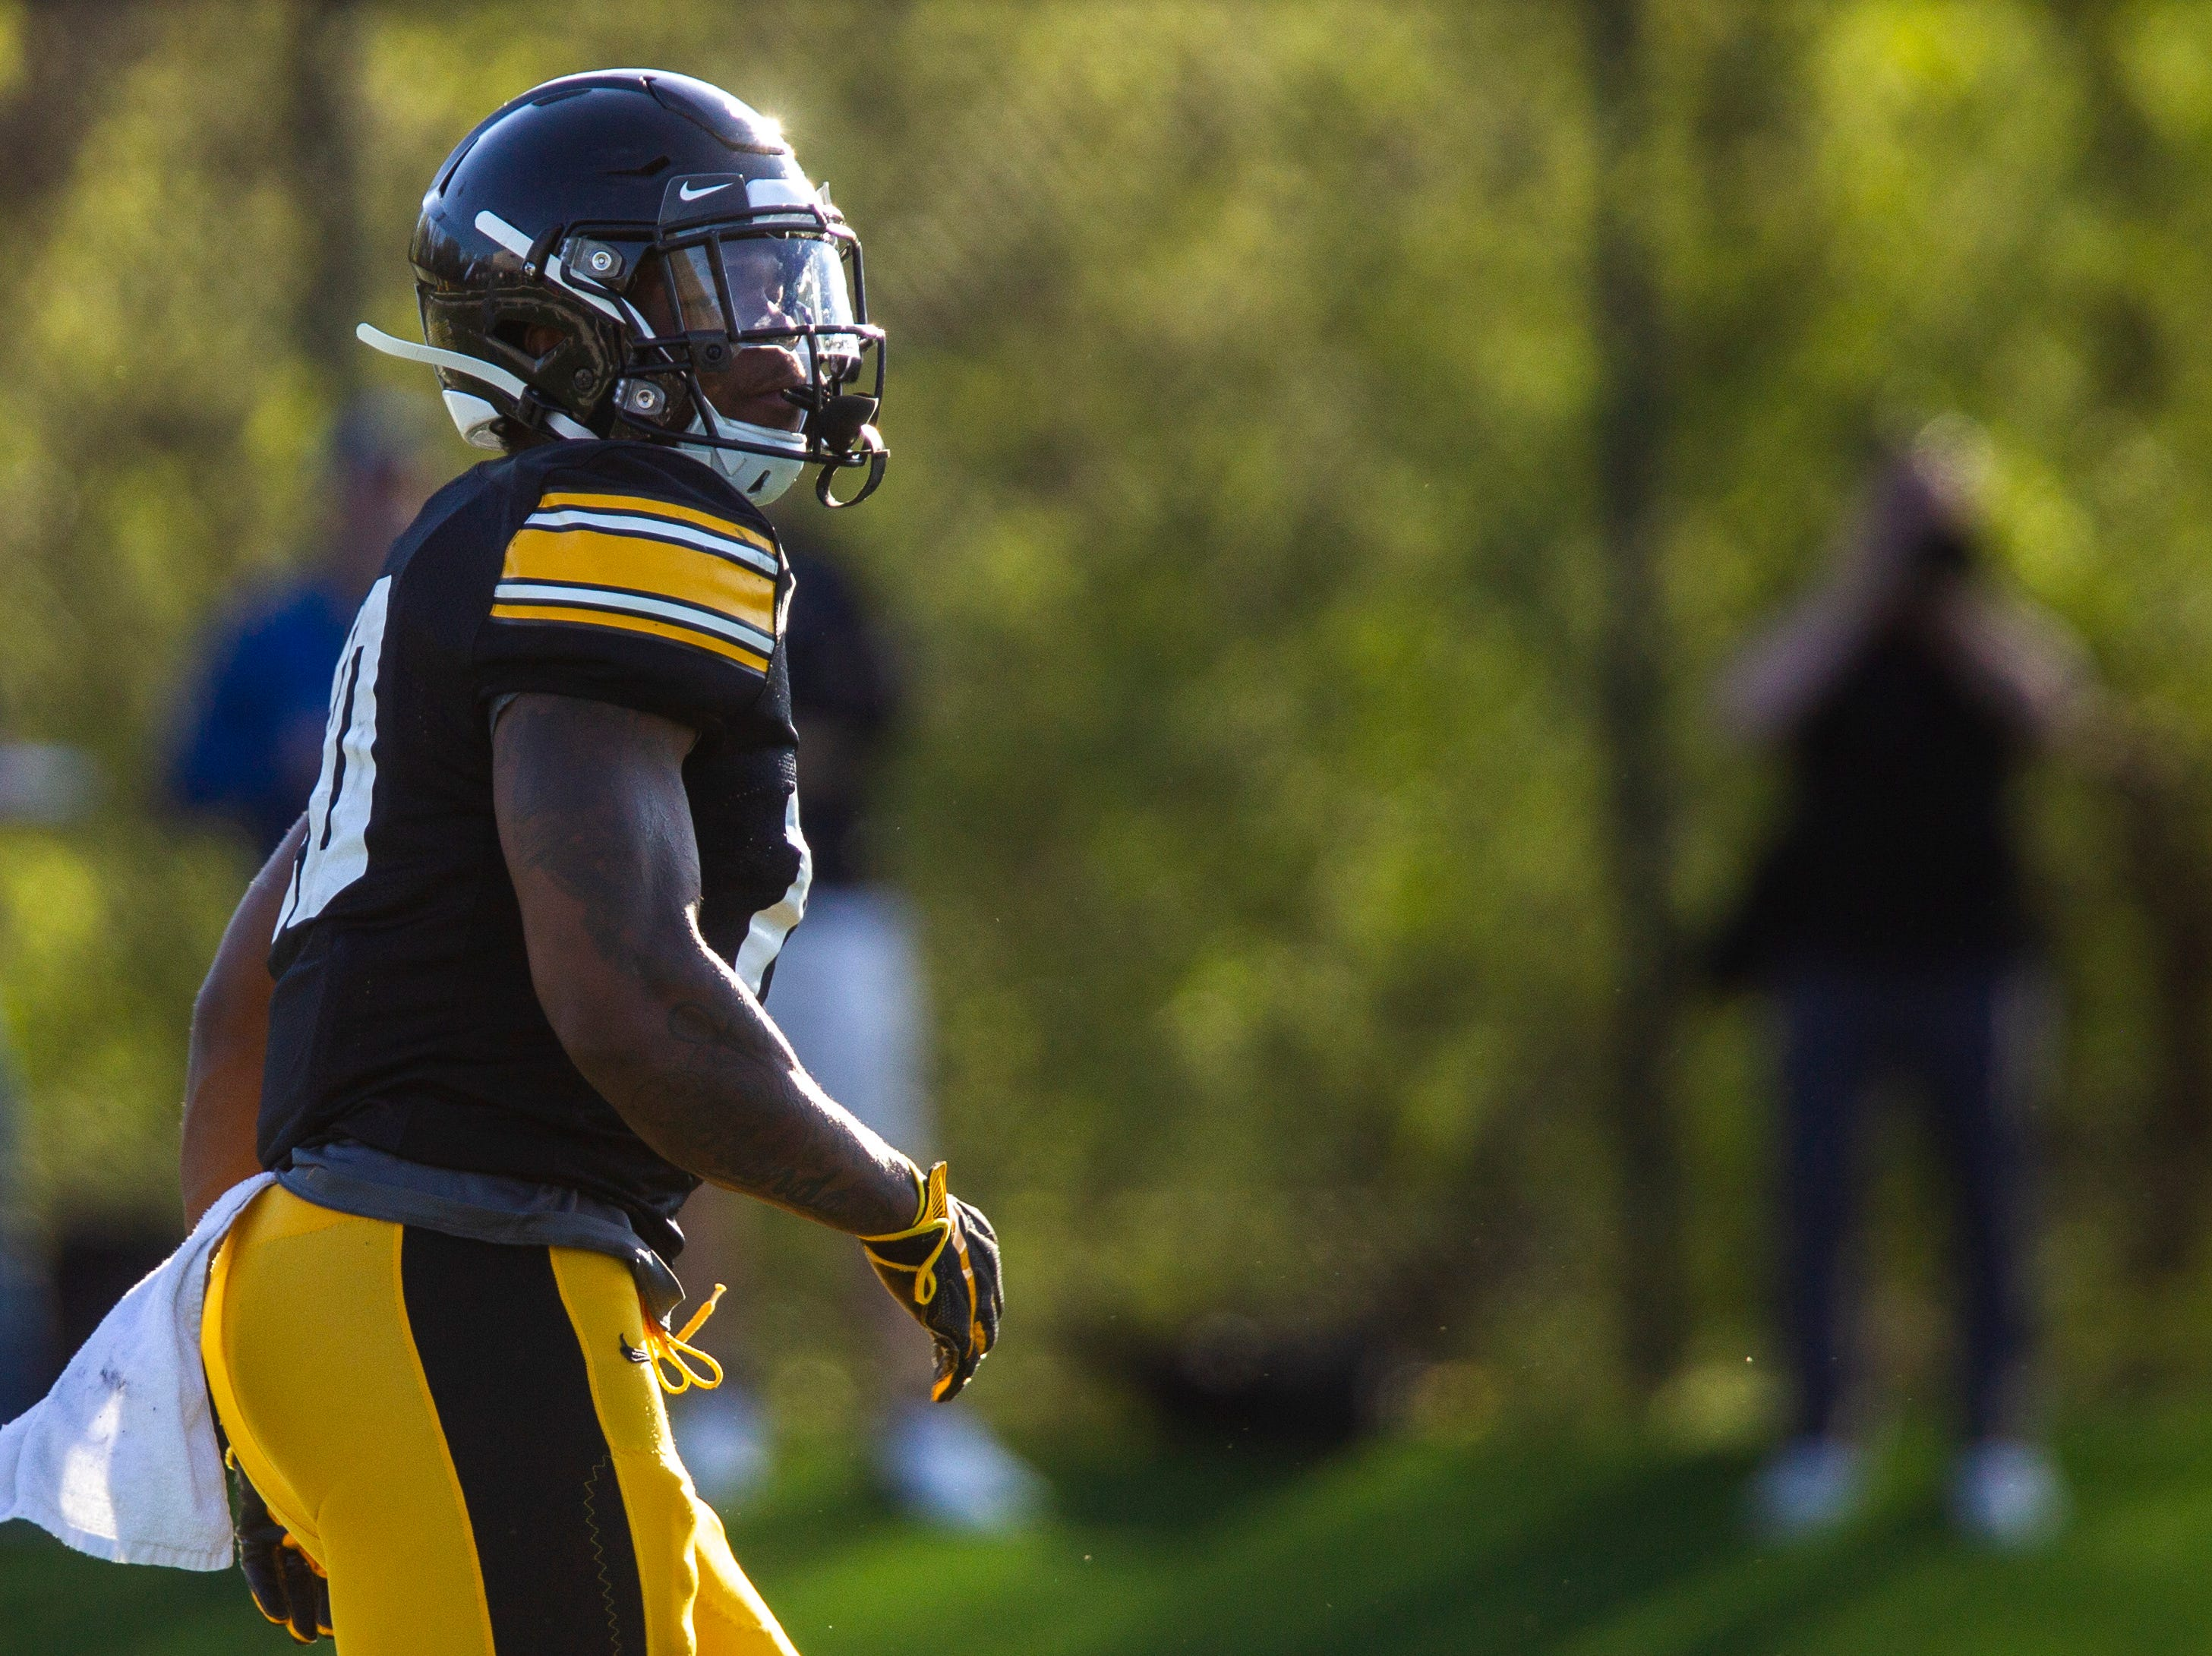 Iowa running back Mekhi Sargent looks up field during the final spring football practice, Friday, April 26, 2019, at the University of Iowa outdoor practice facility in Iowa City, Iowa.